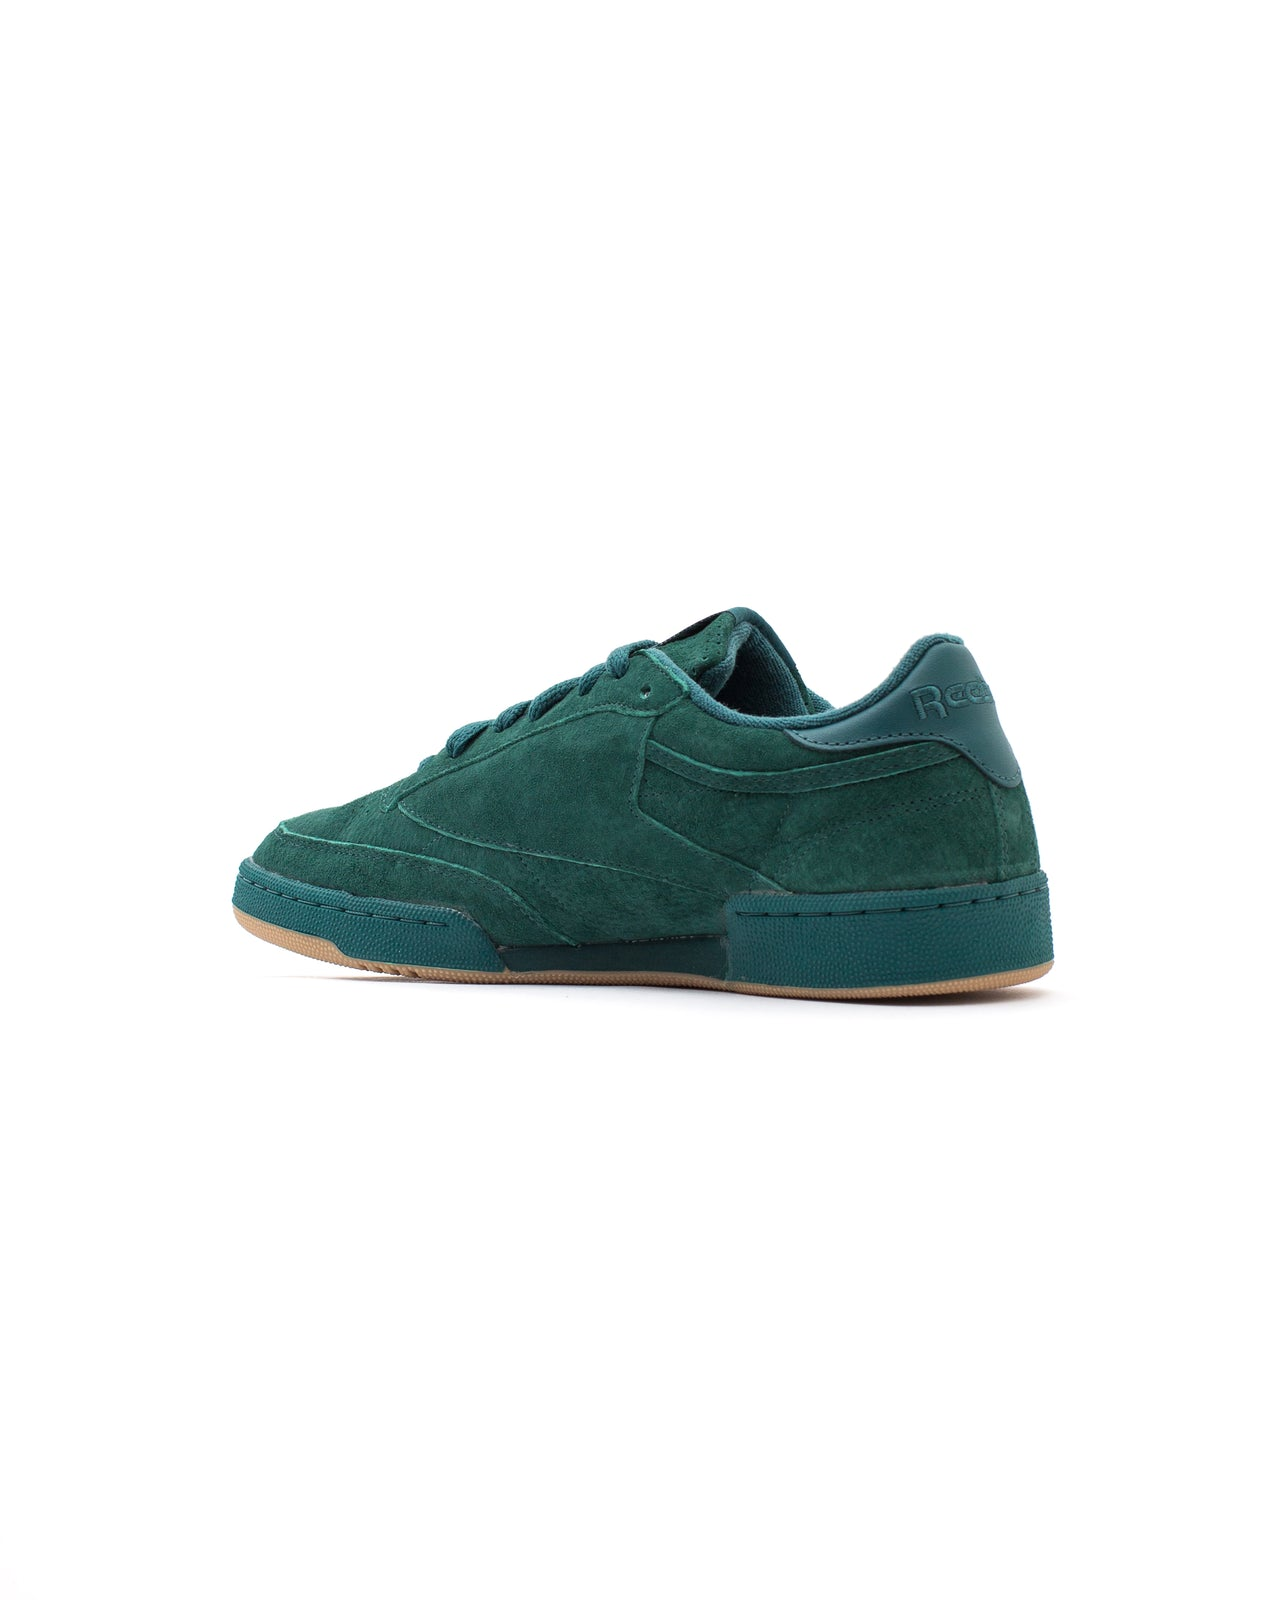 Club C 85 SG - Color: Washed Jade | Green